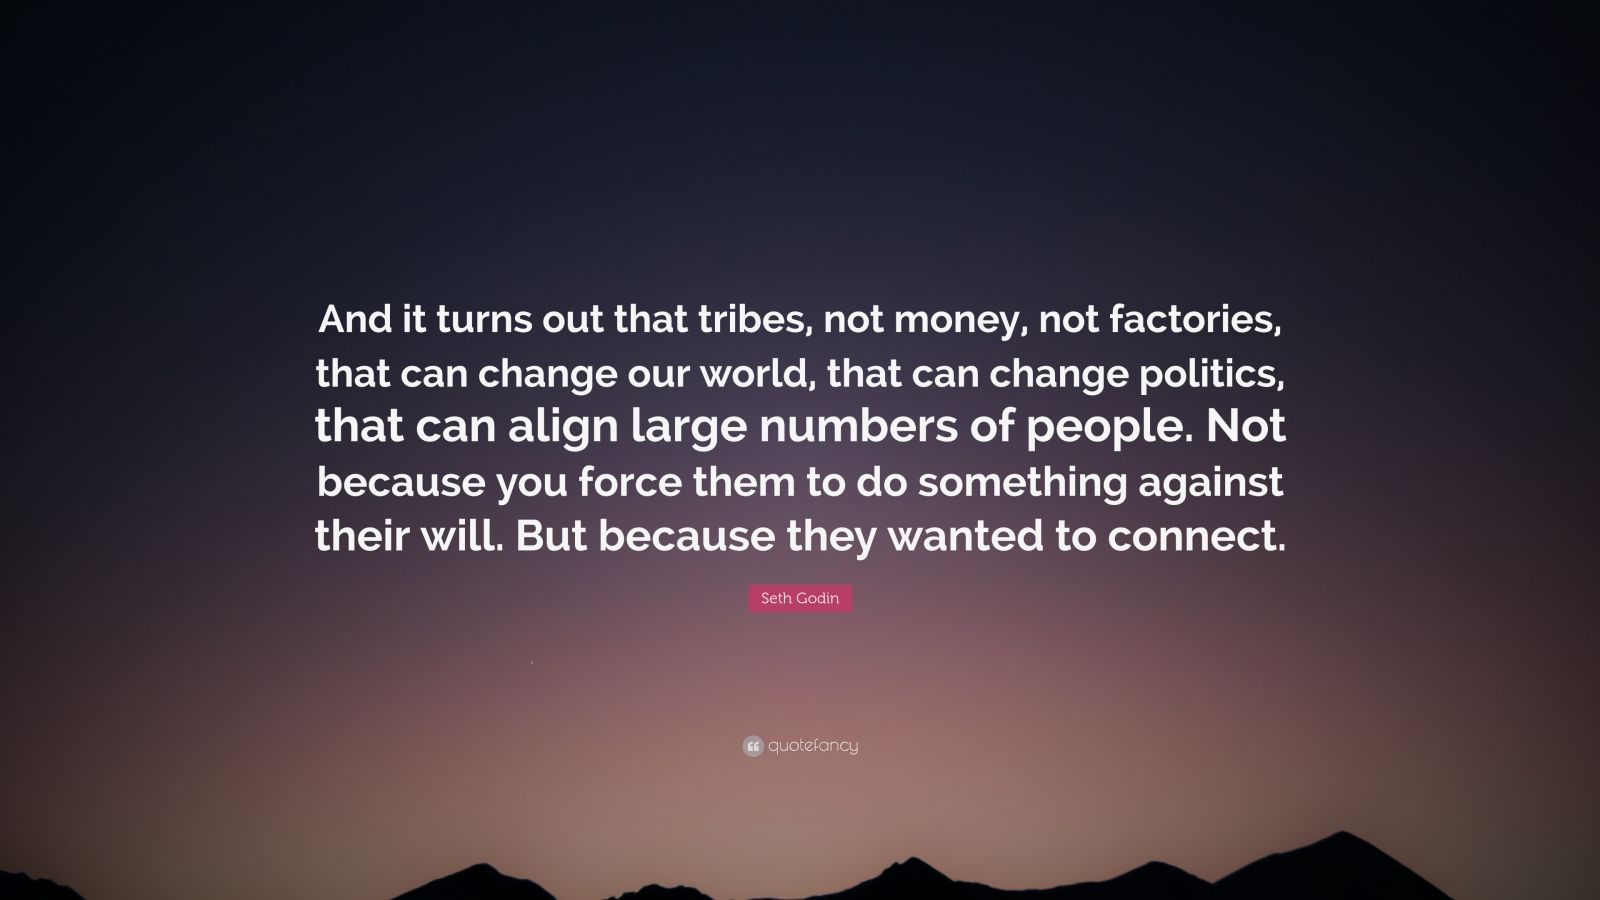 "Seth Godin Quote: ""And it turns out that tribes, not money, not factories, that can change our world, that can change politics, that can align large numbers of people. Not because you force them to do something against their will. But because they wanted to connect."""